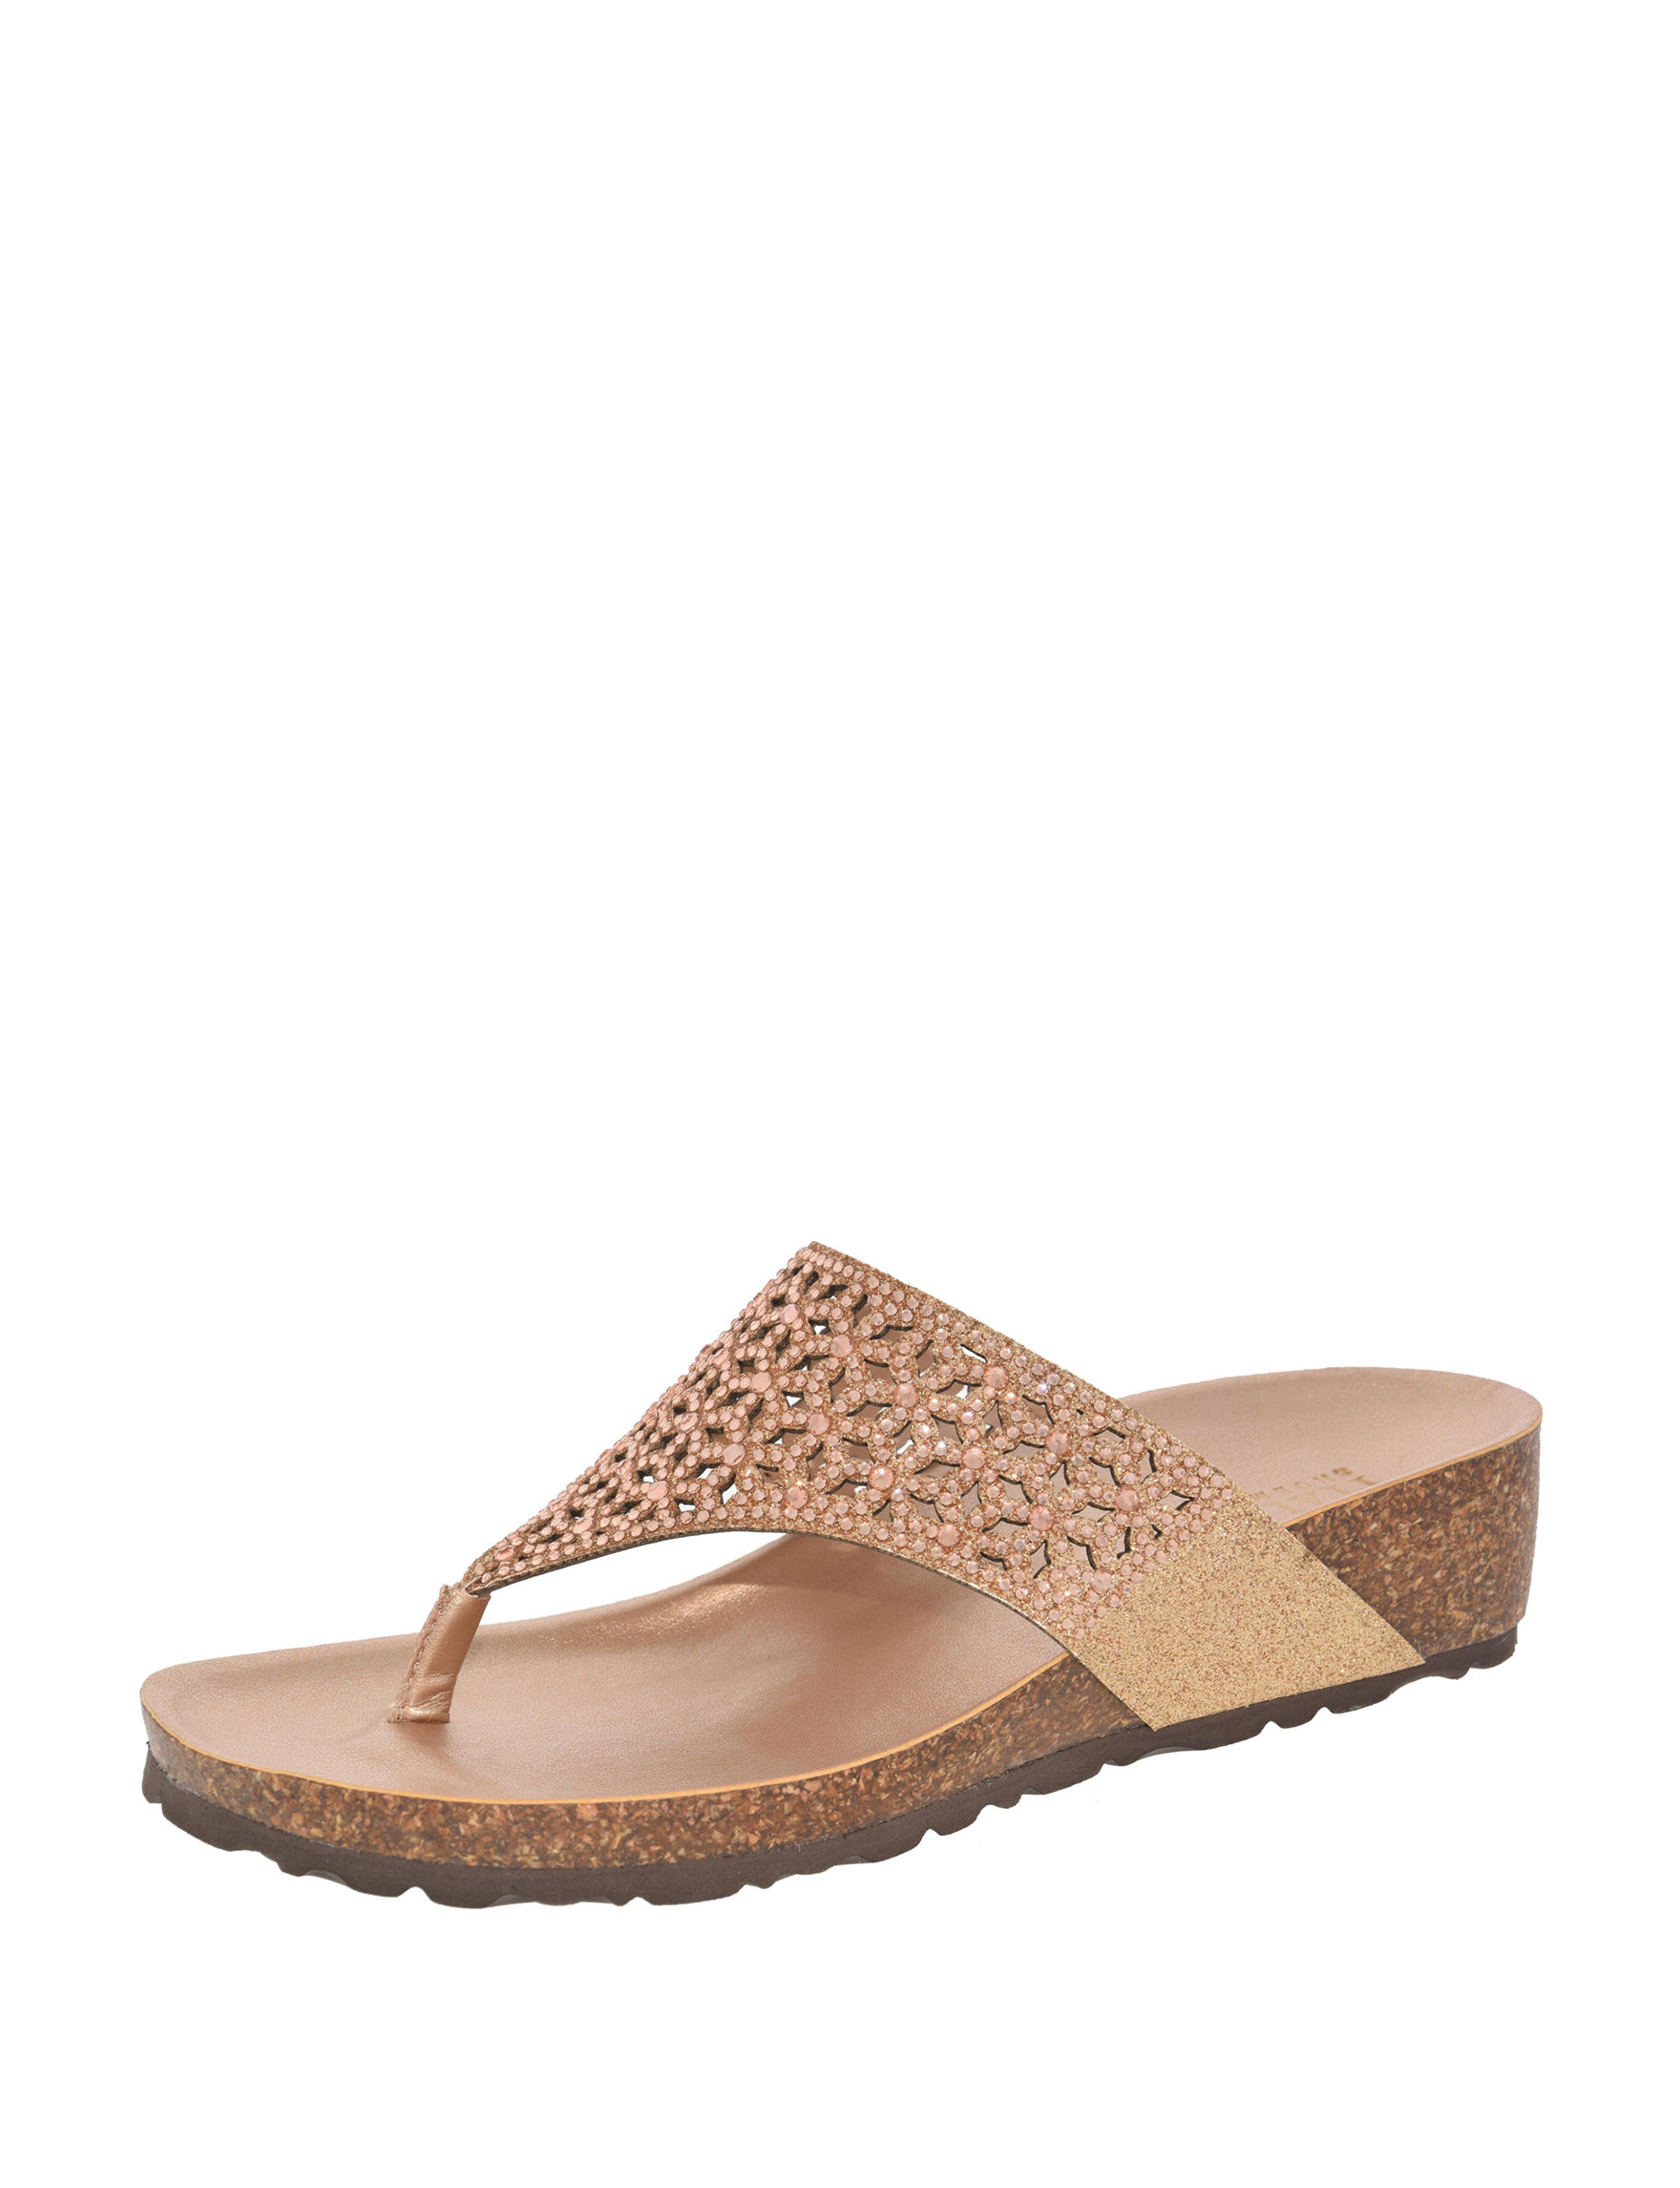 Italian Shoemakers Rose Gold Wedge Sandals